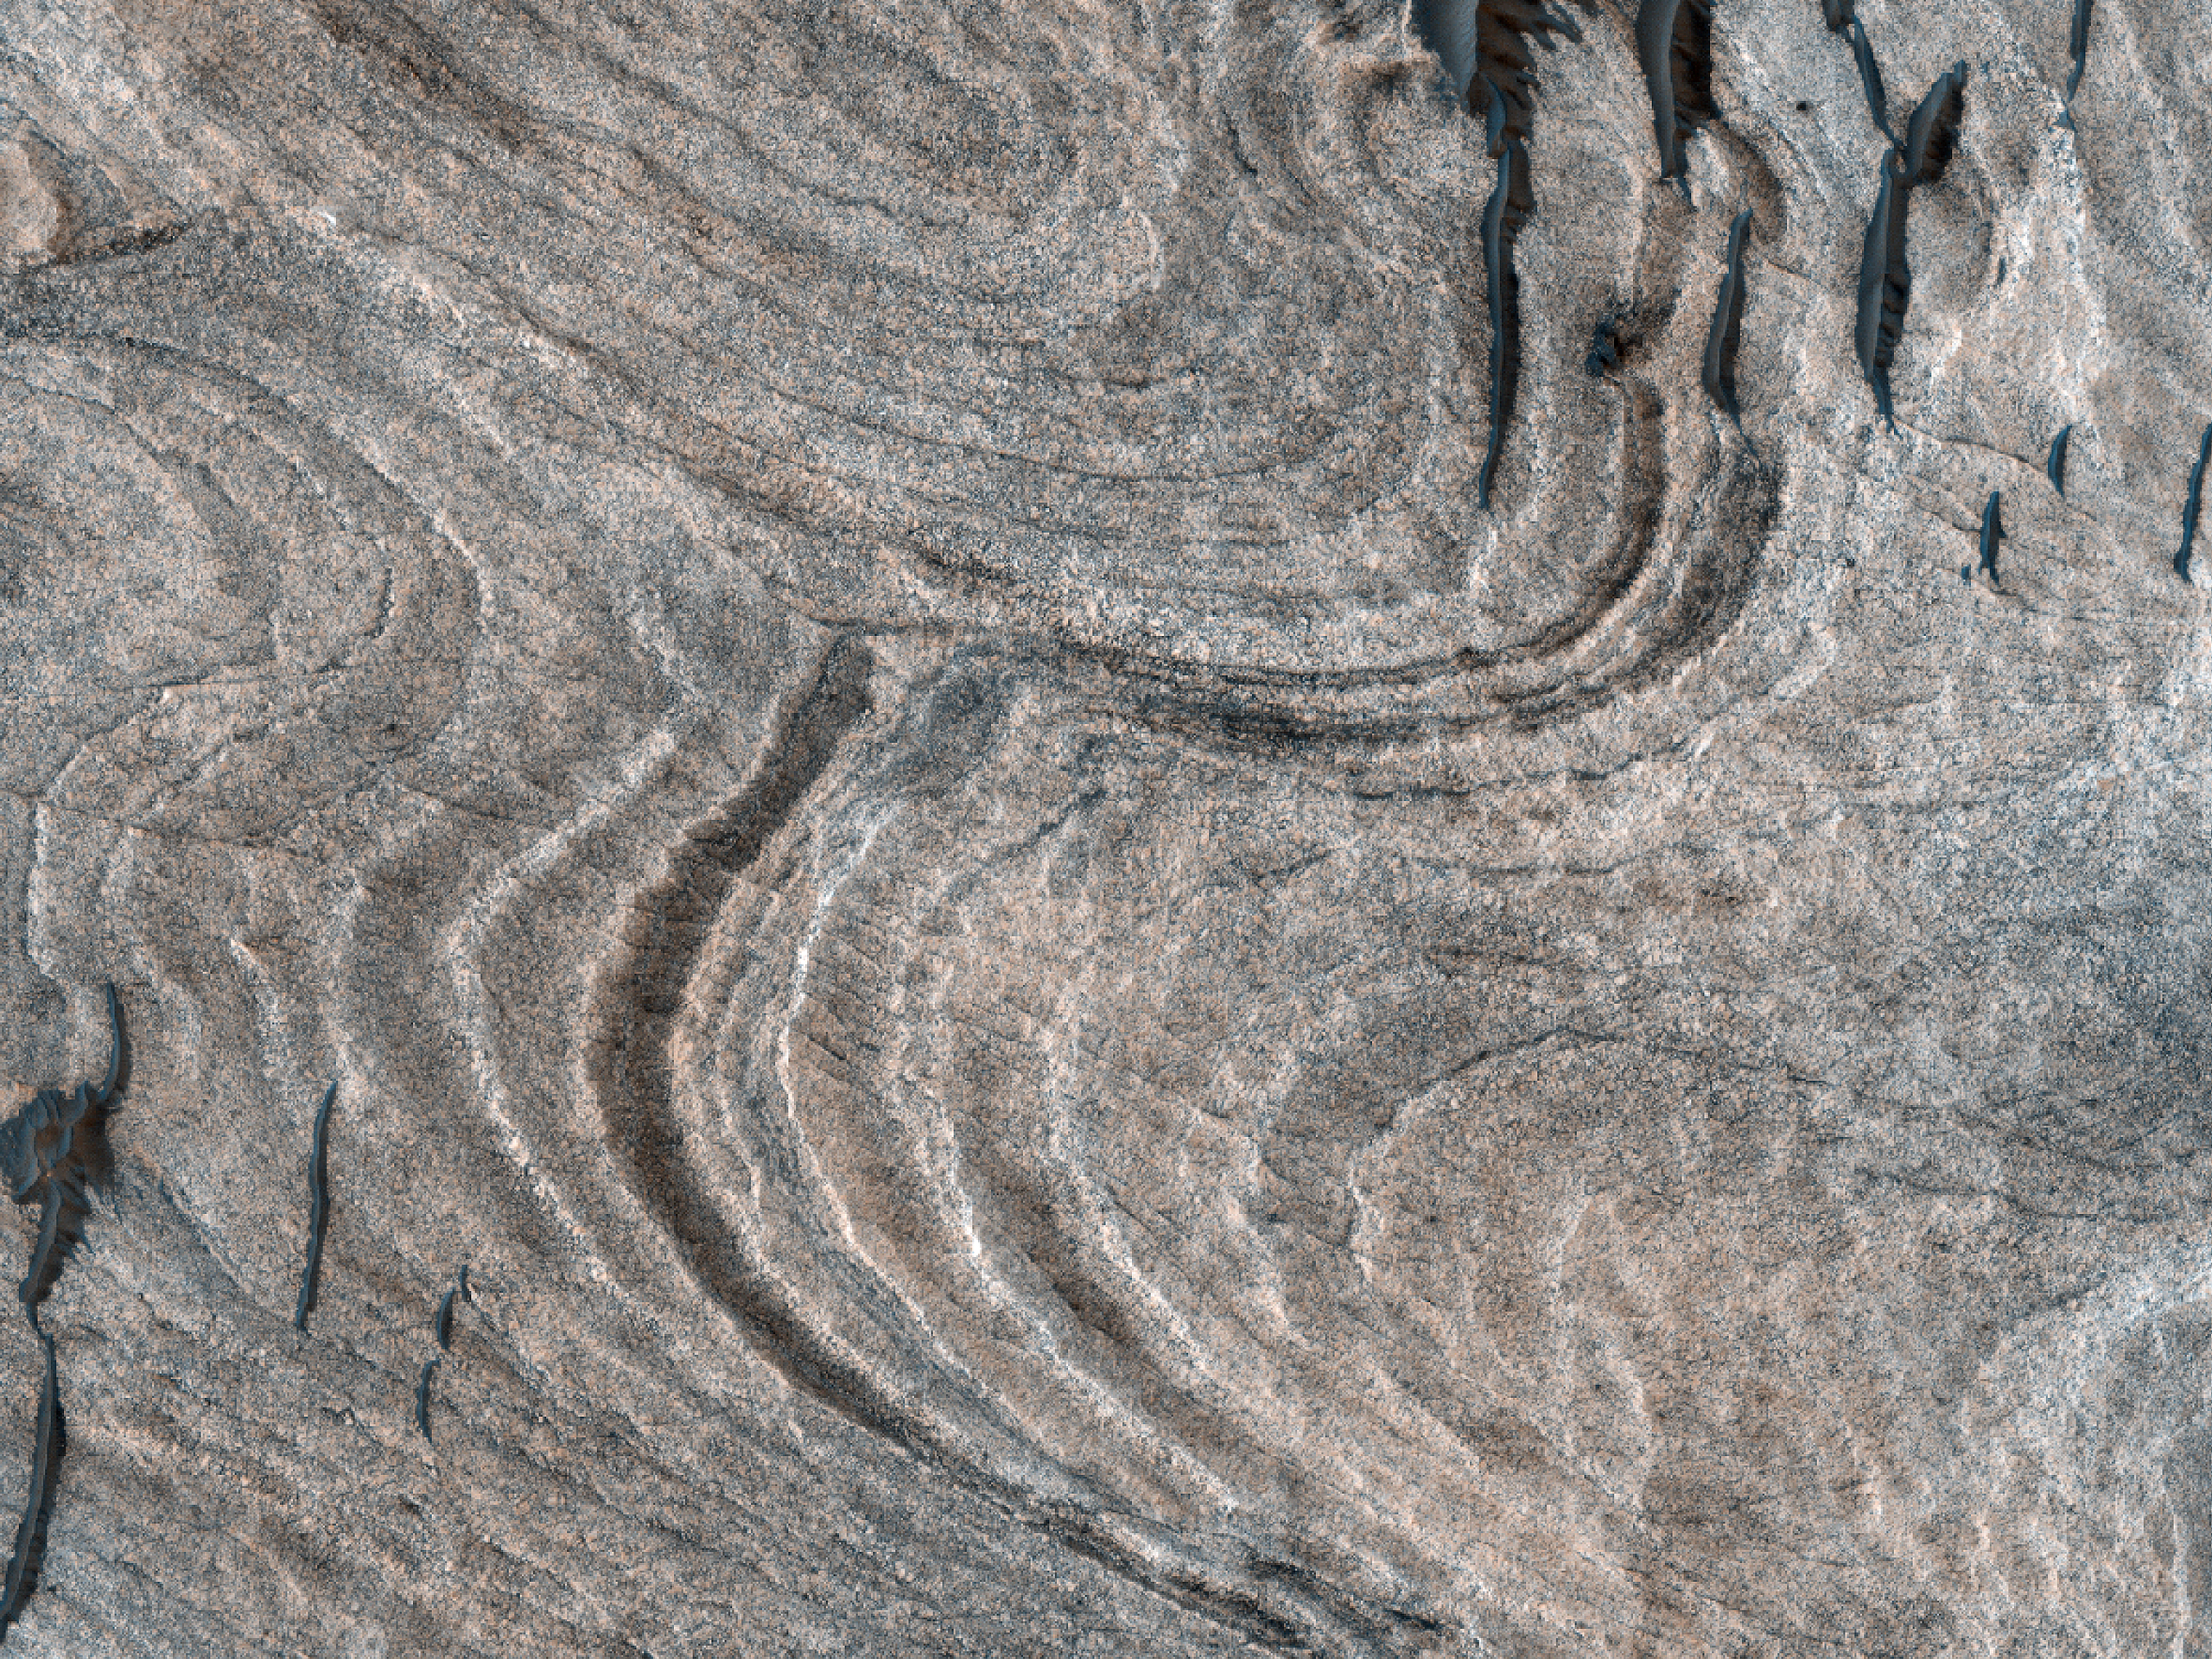 Differential Erosion of Light-Toned Stratigraphy in Melas Chasma